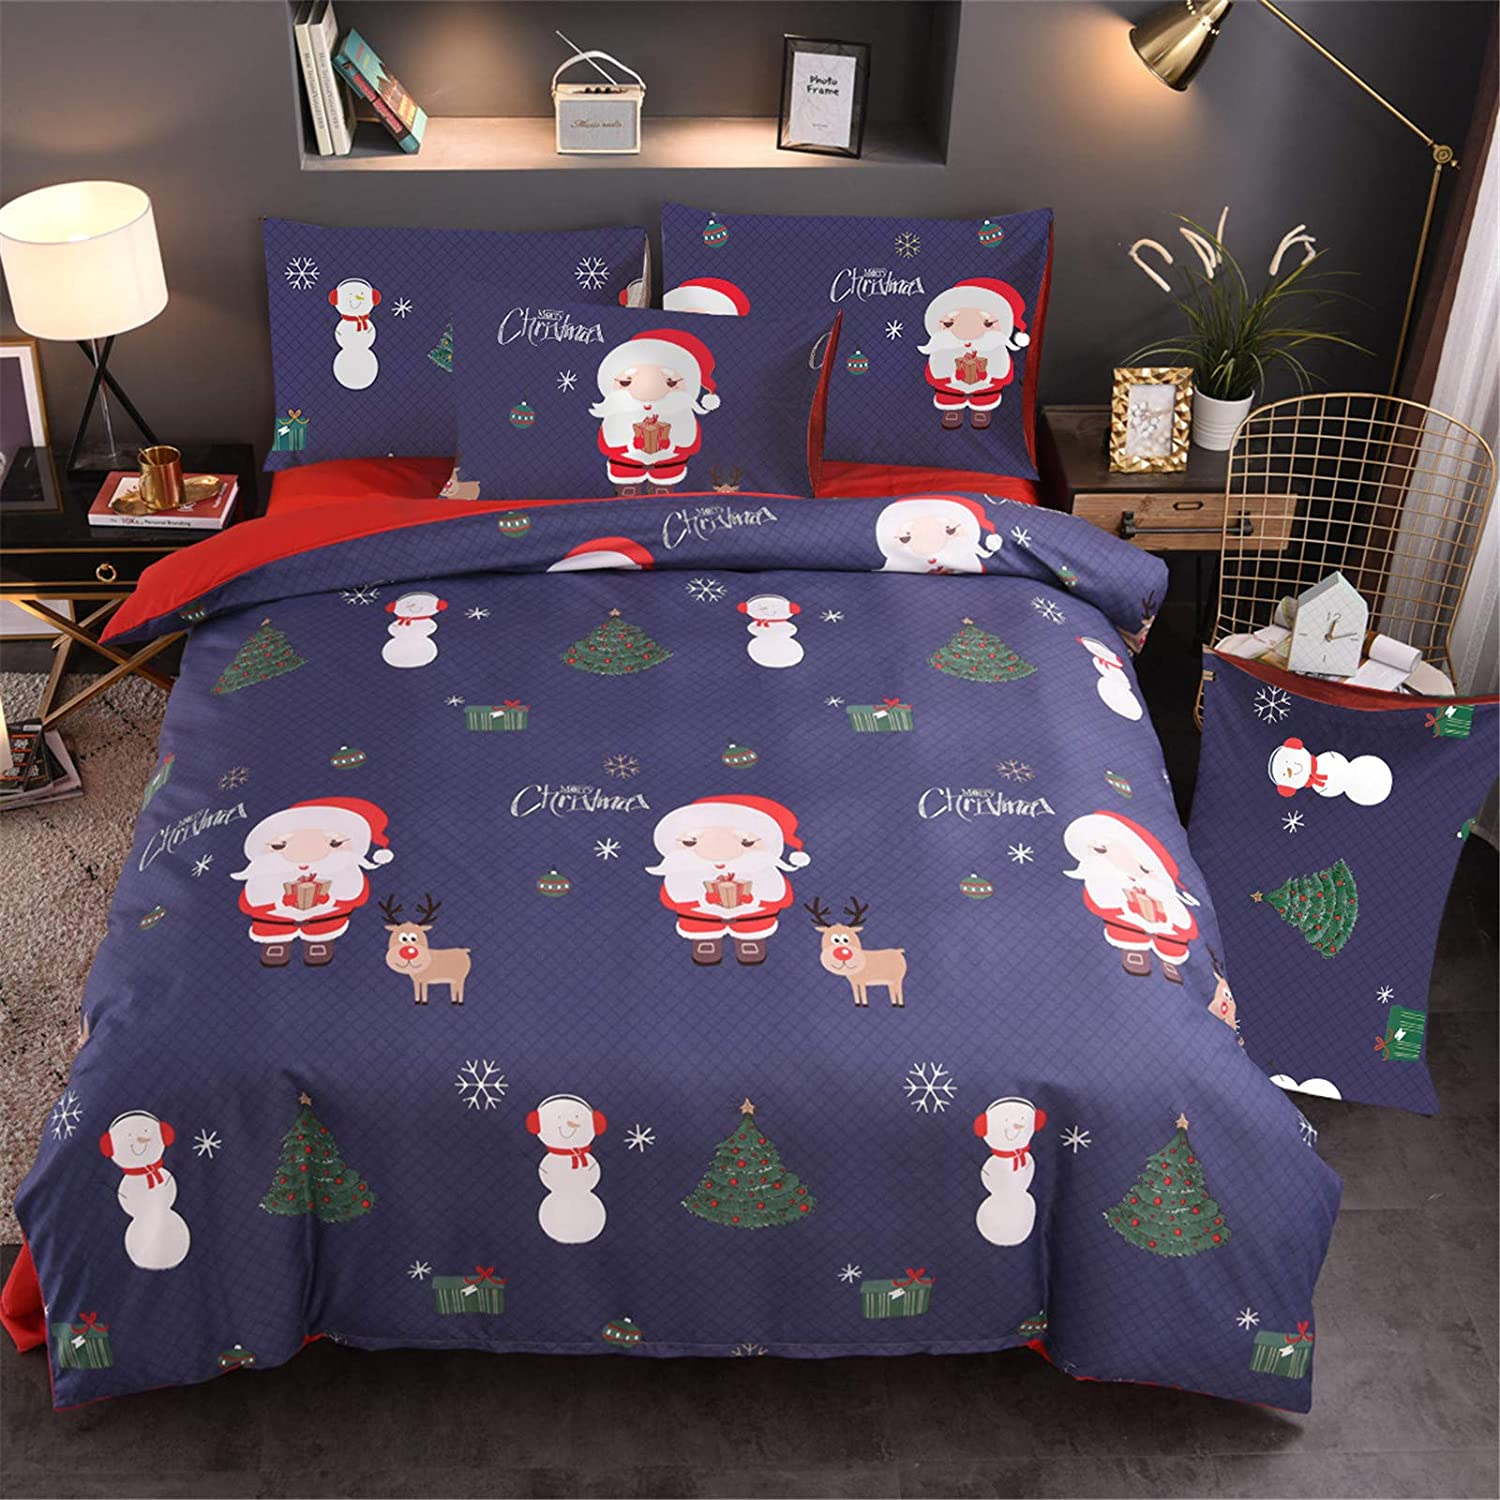 A Nice Night Christmas Tree Deer Santa Claus Printed Bedding Sets Quilt Cover Set No Comforter(Christmas-Style 01, Twin Size)